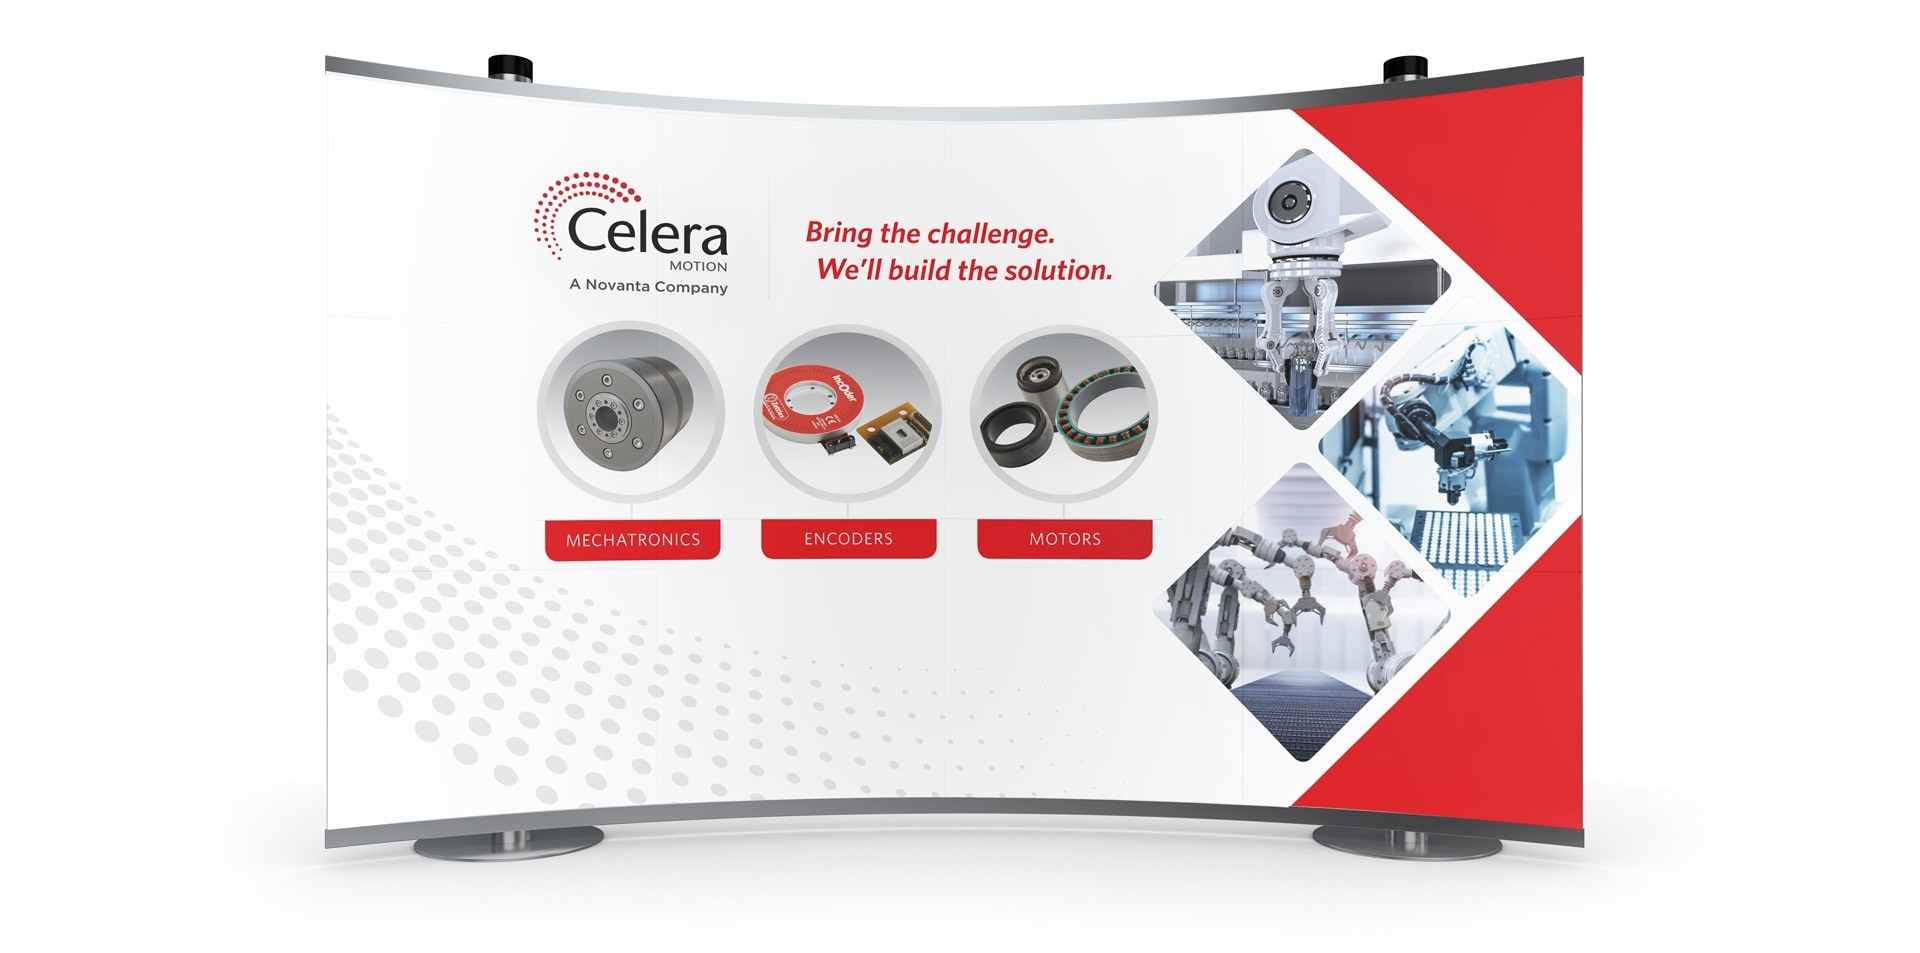 A 10x10 pop-up trade show graphic was designed and produced by The Simon Group for Celera Motion.